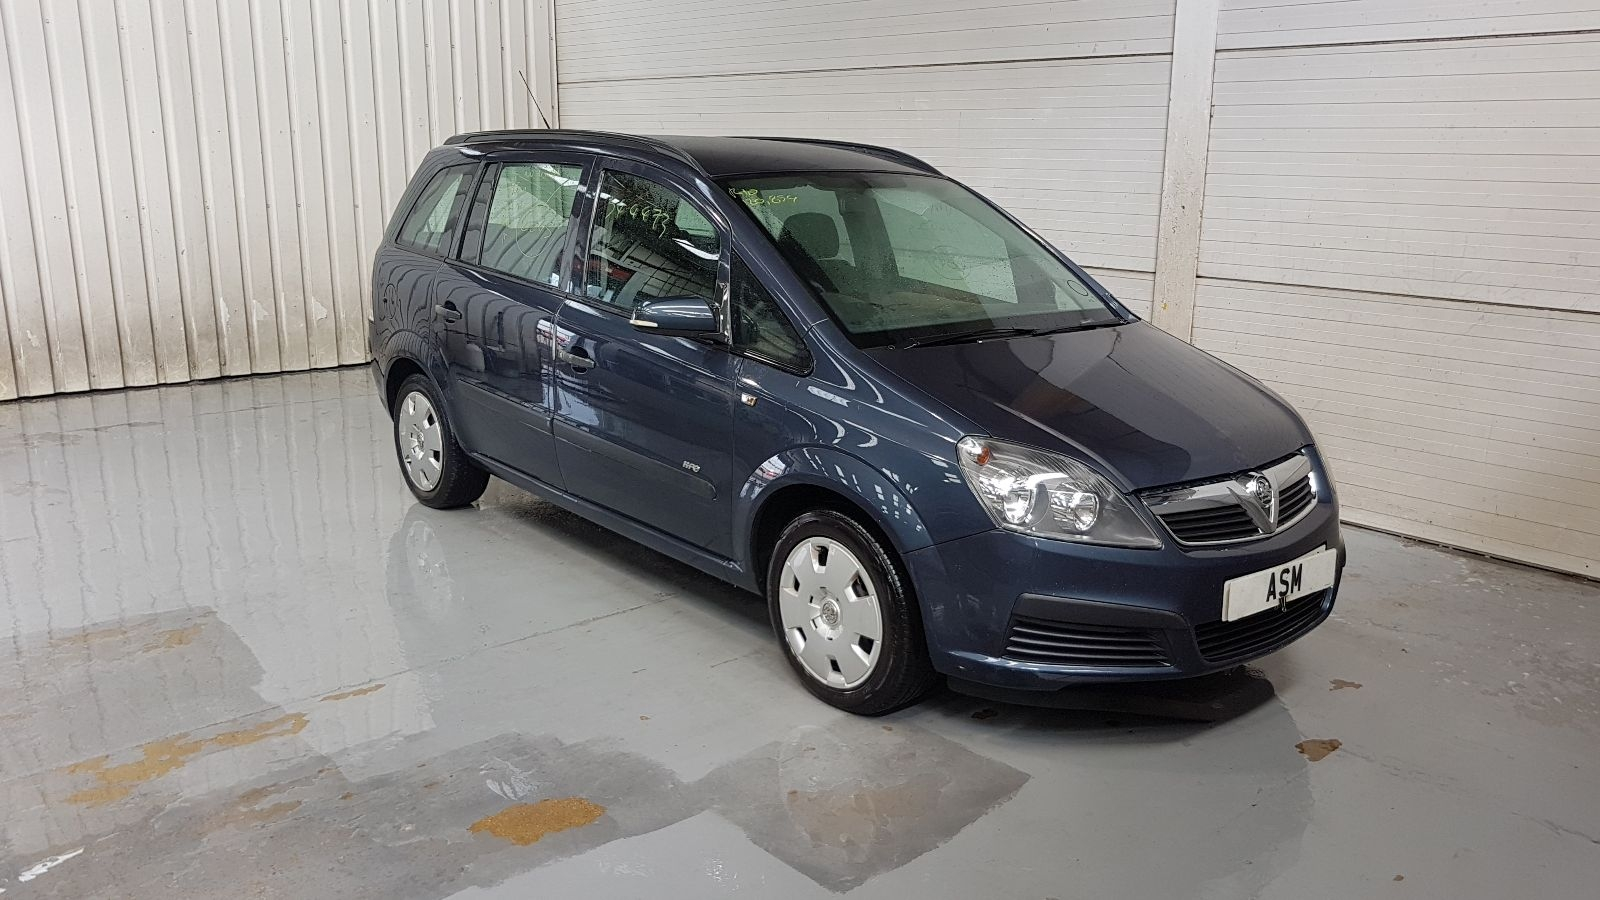 Image for a 2006 Vauxhall Zafira 1.6 Petrol Z16XEP Engine